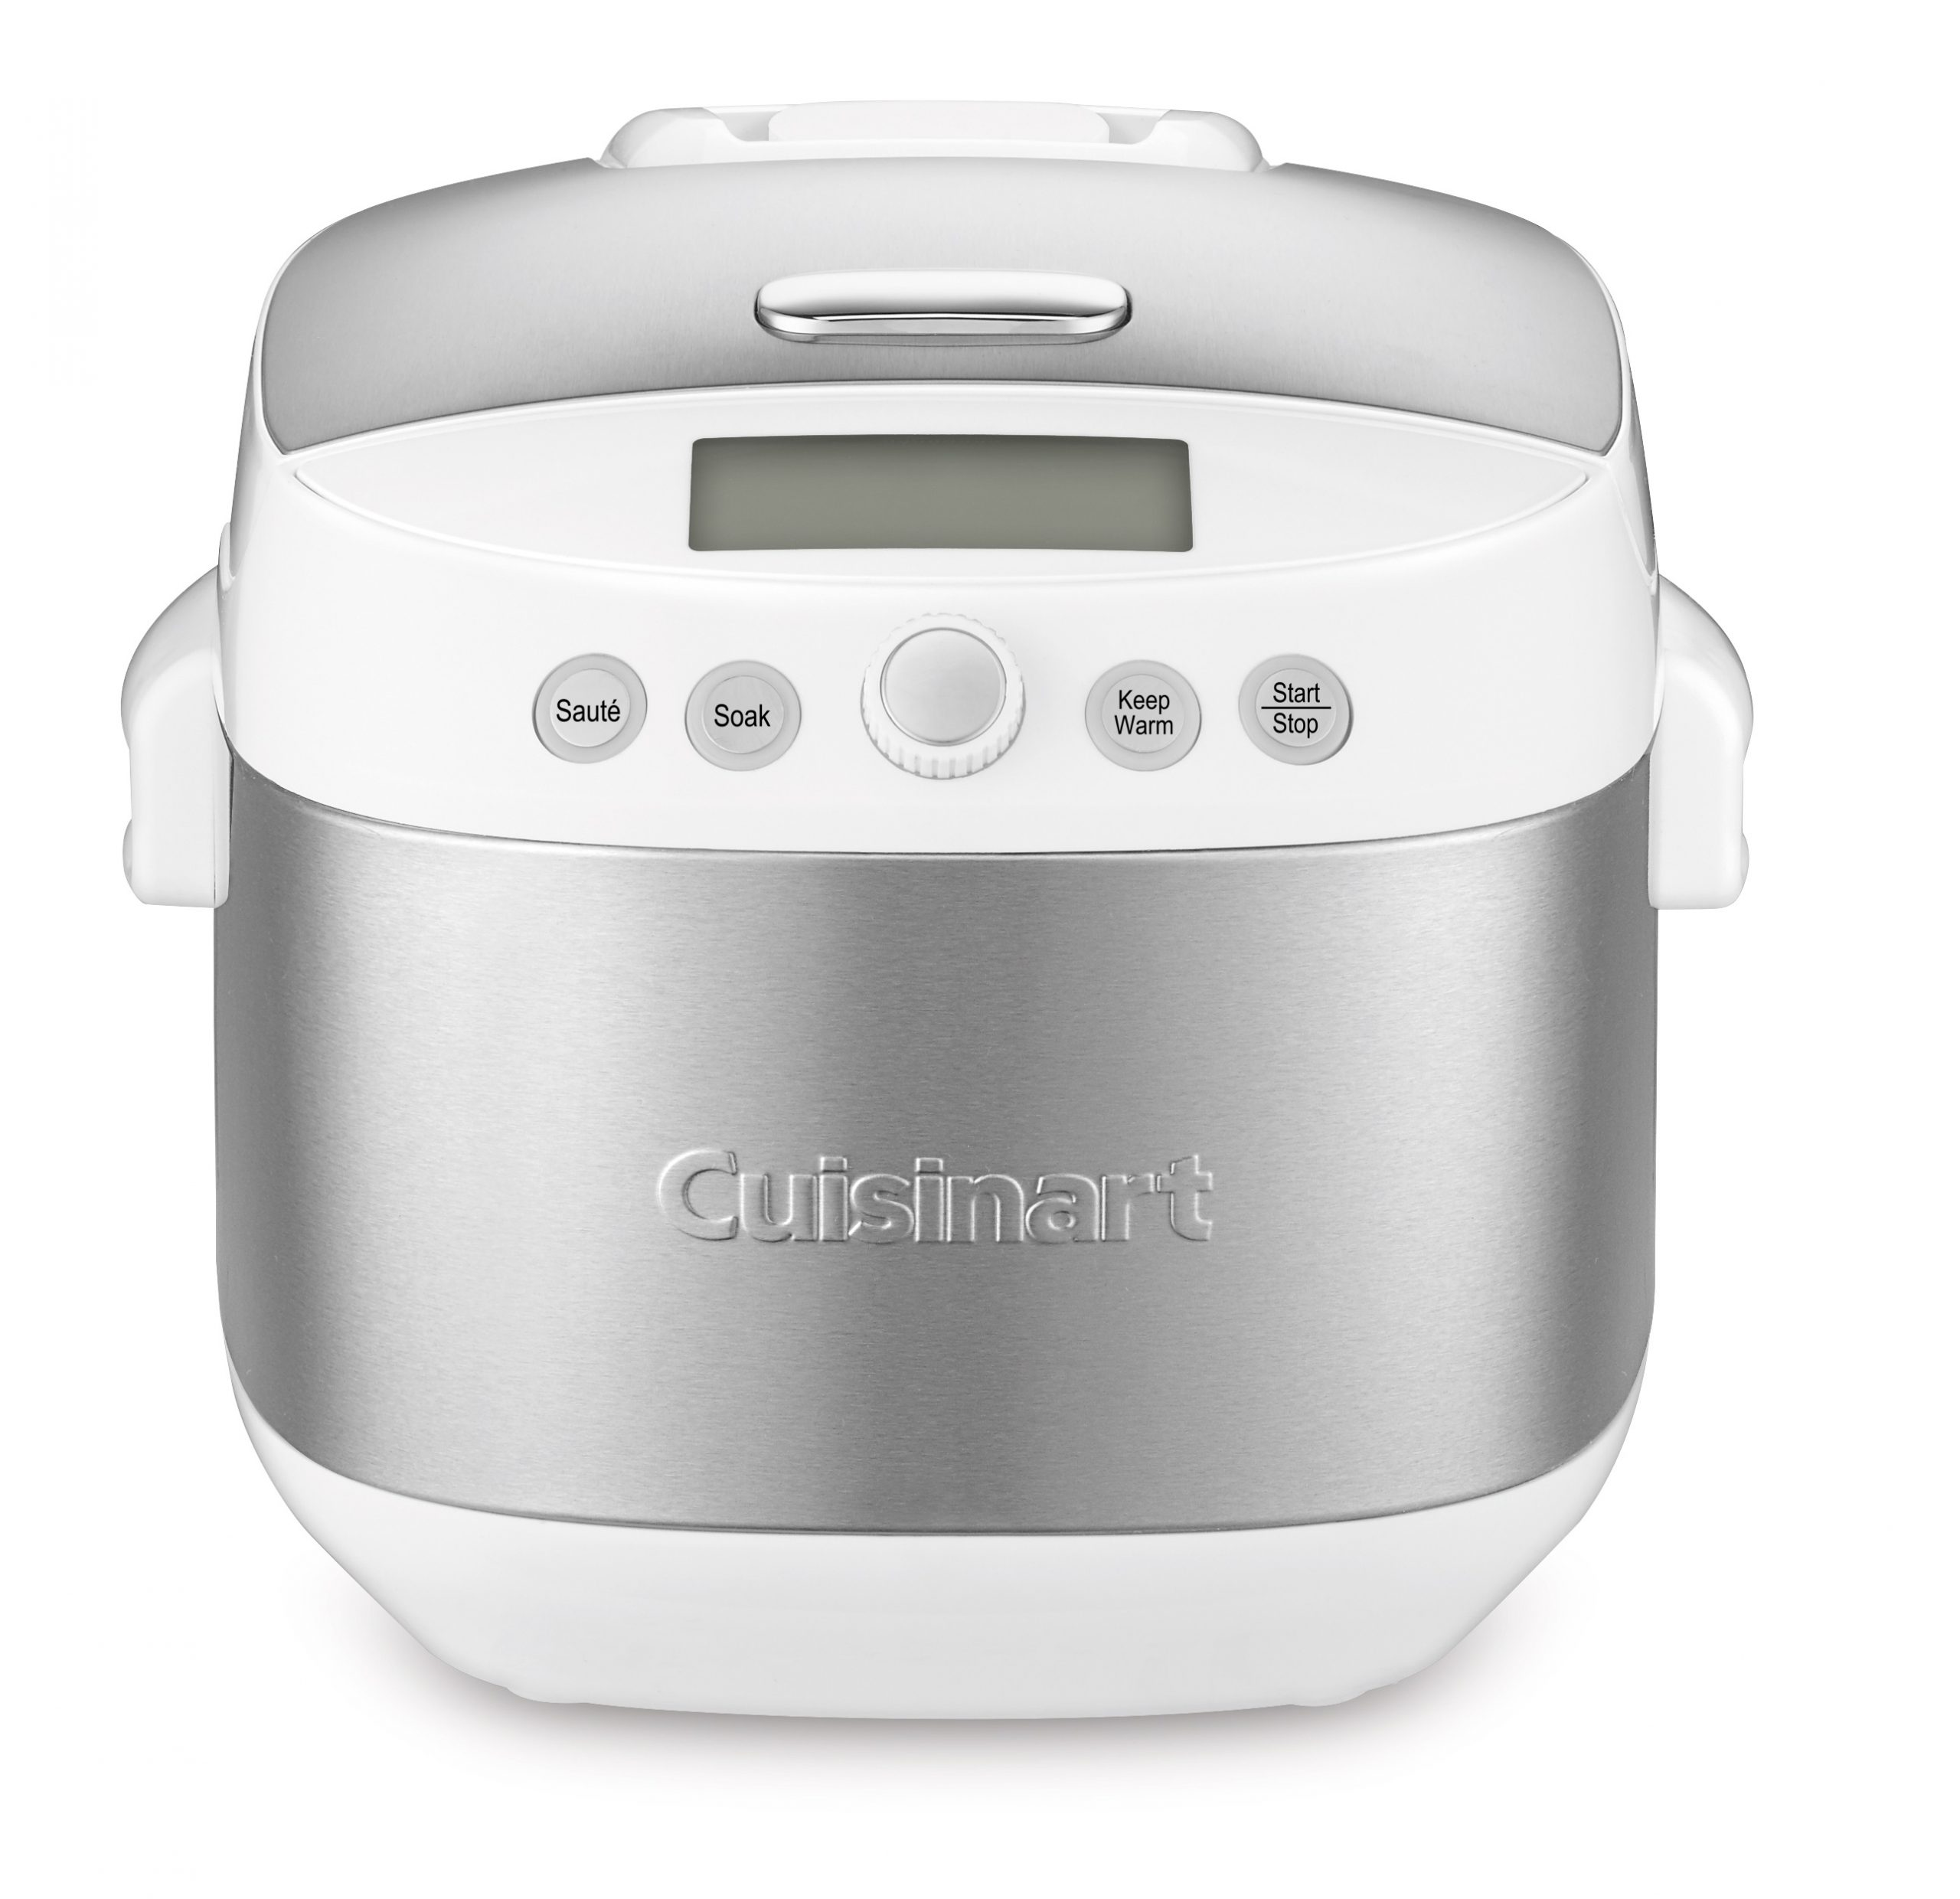 Cuisinart rice and grains cooker